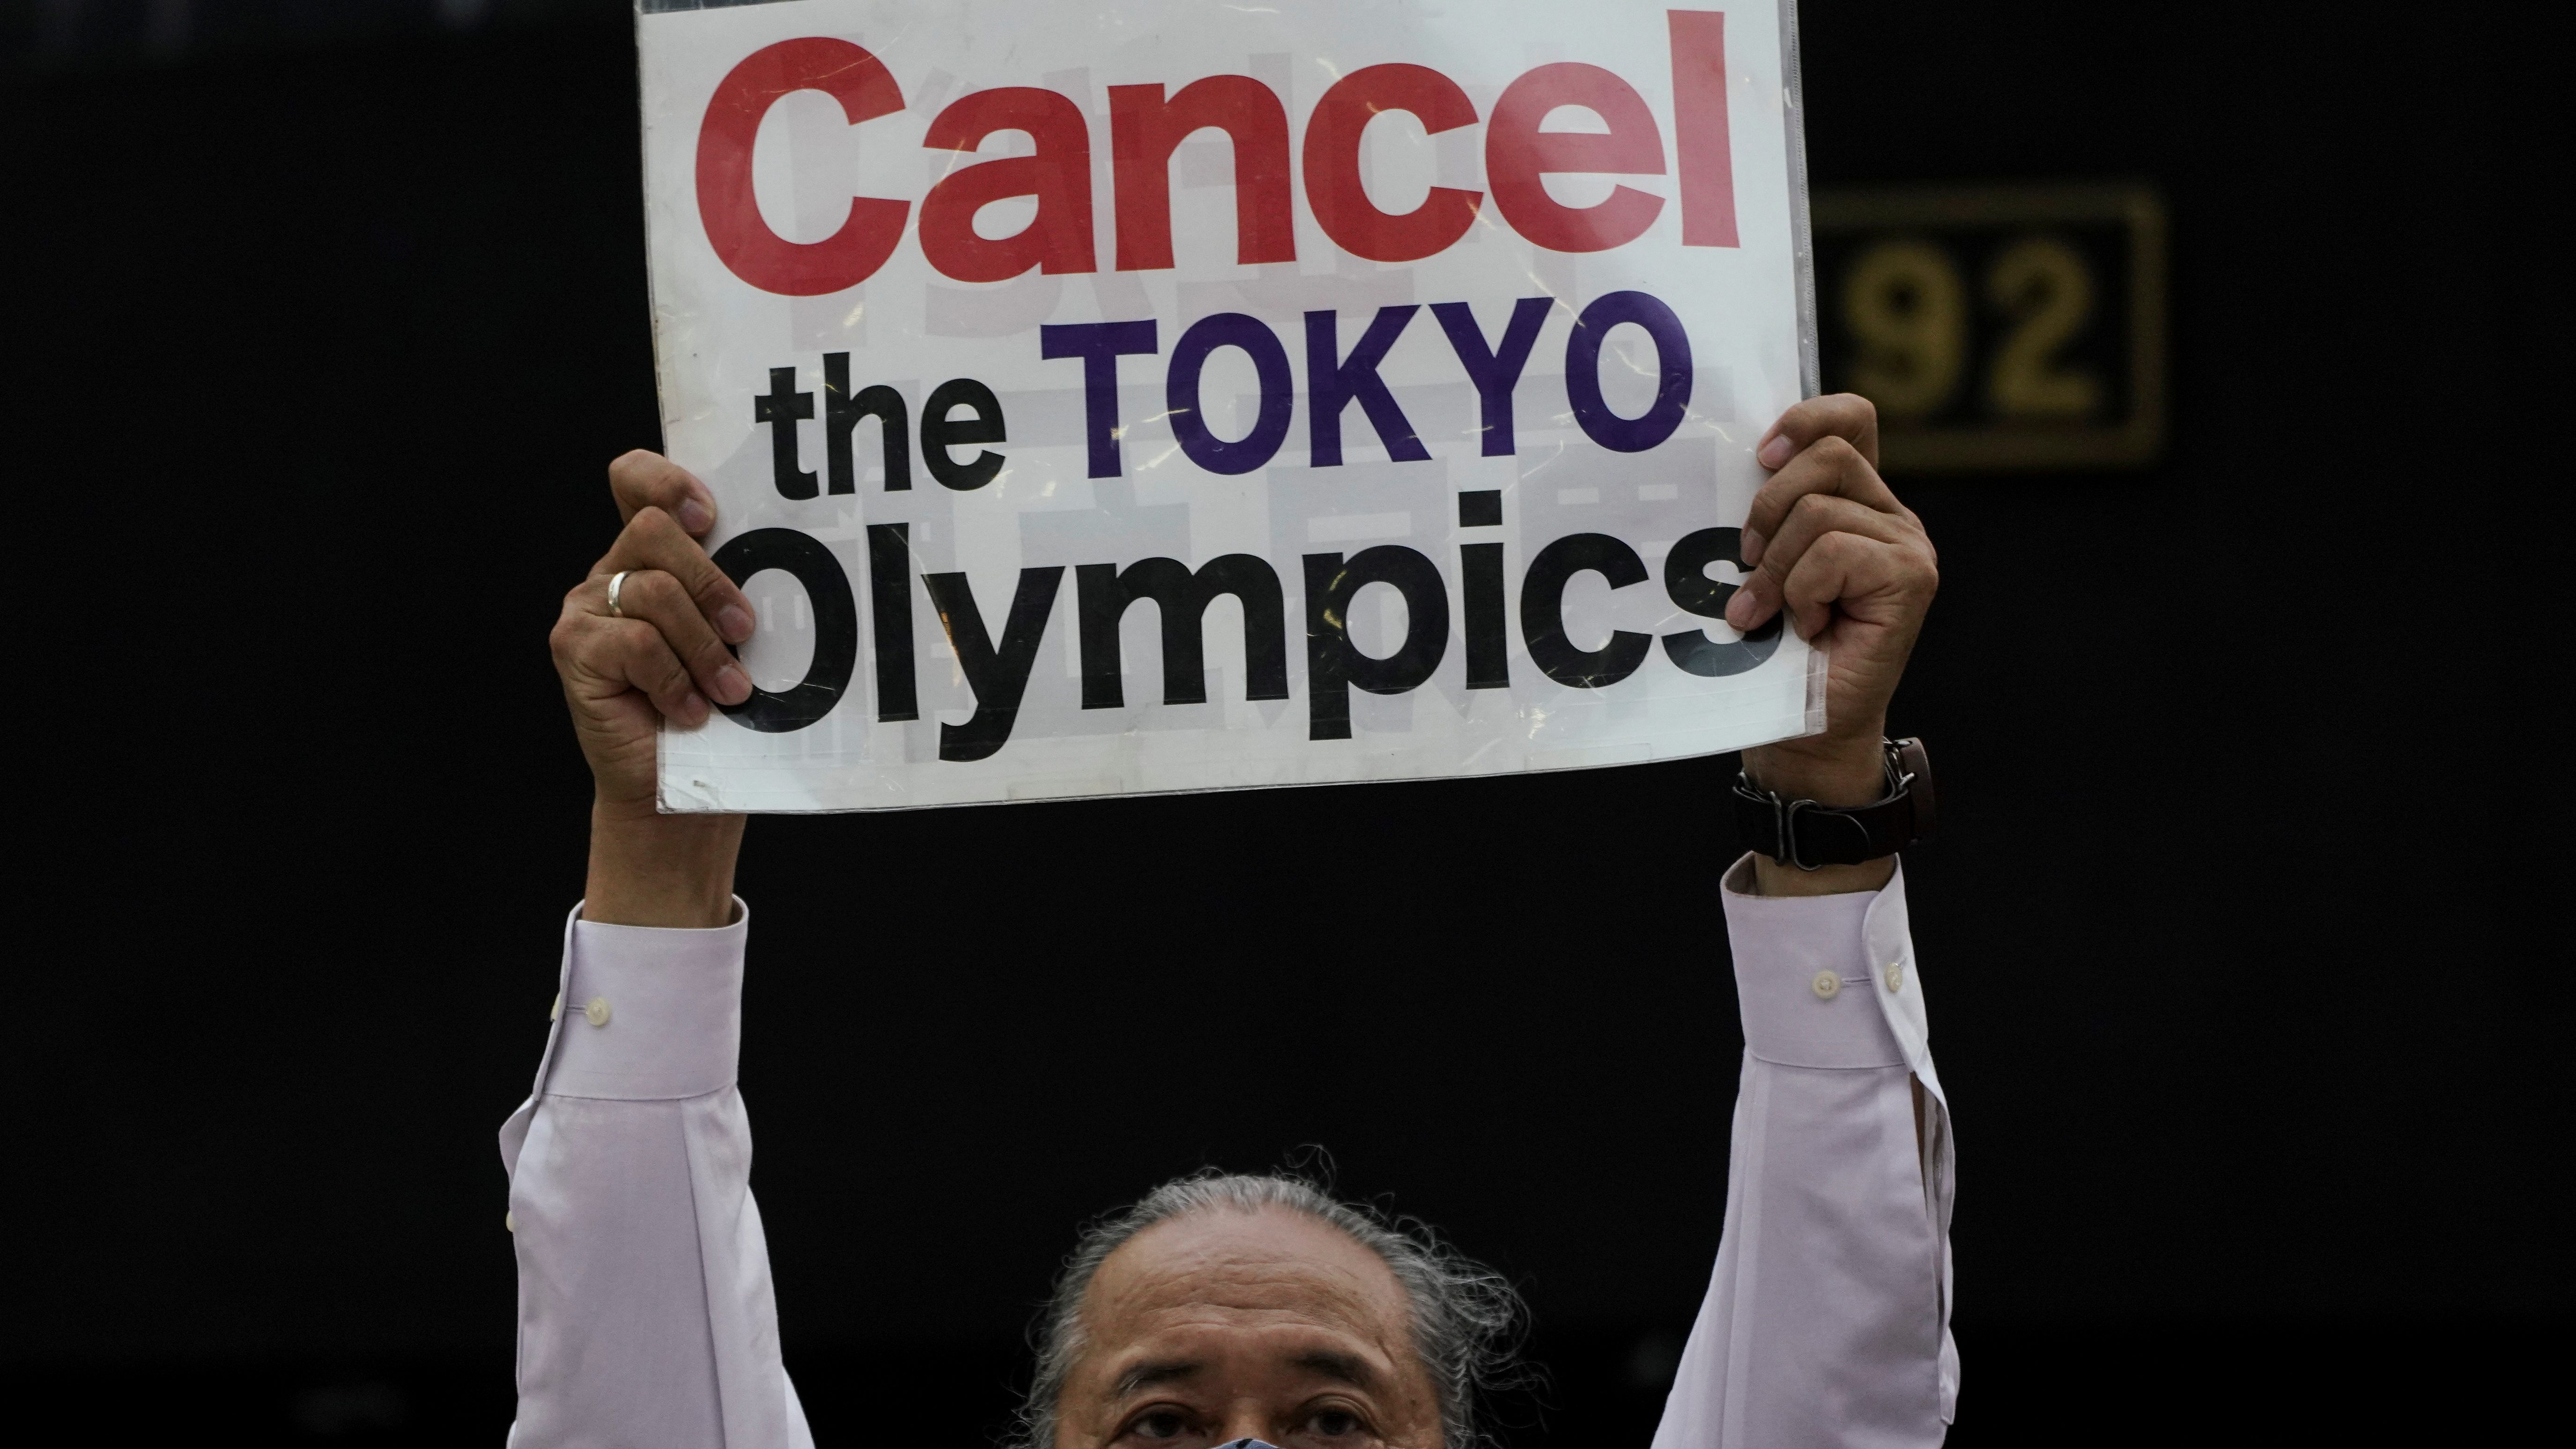 A protester holds up a banner calling for the Olympic Games to be canceled